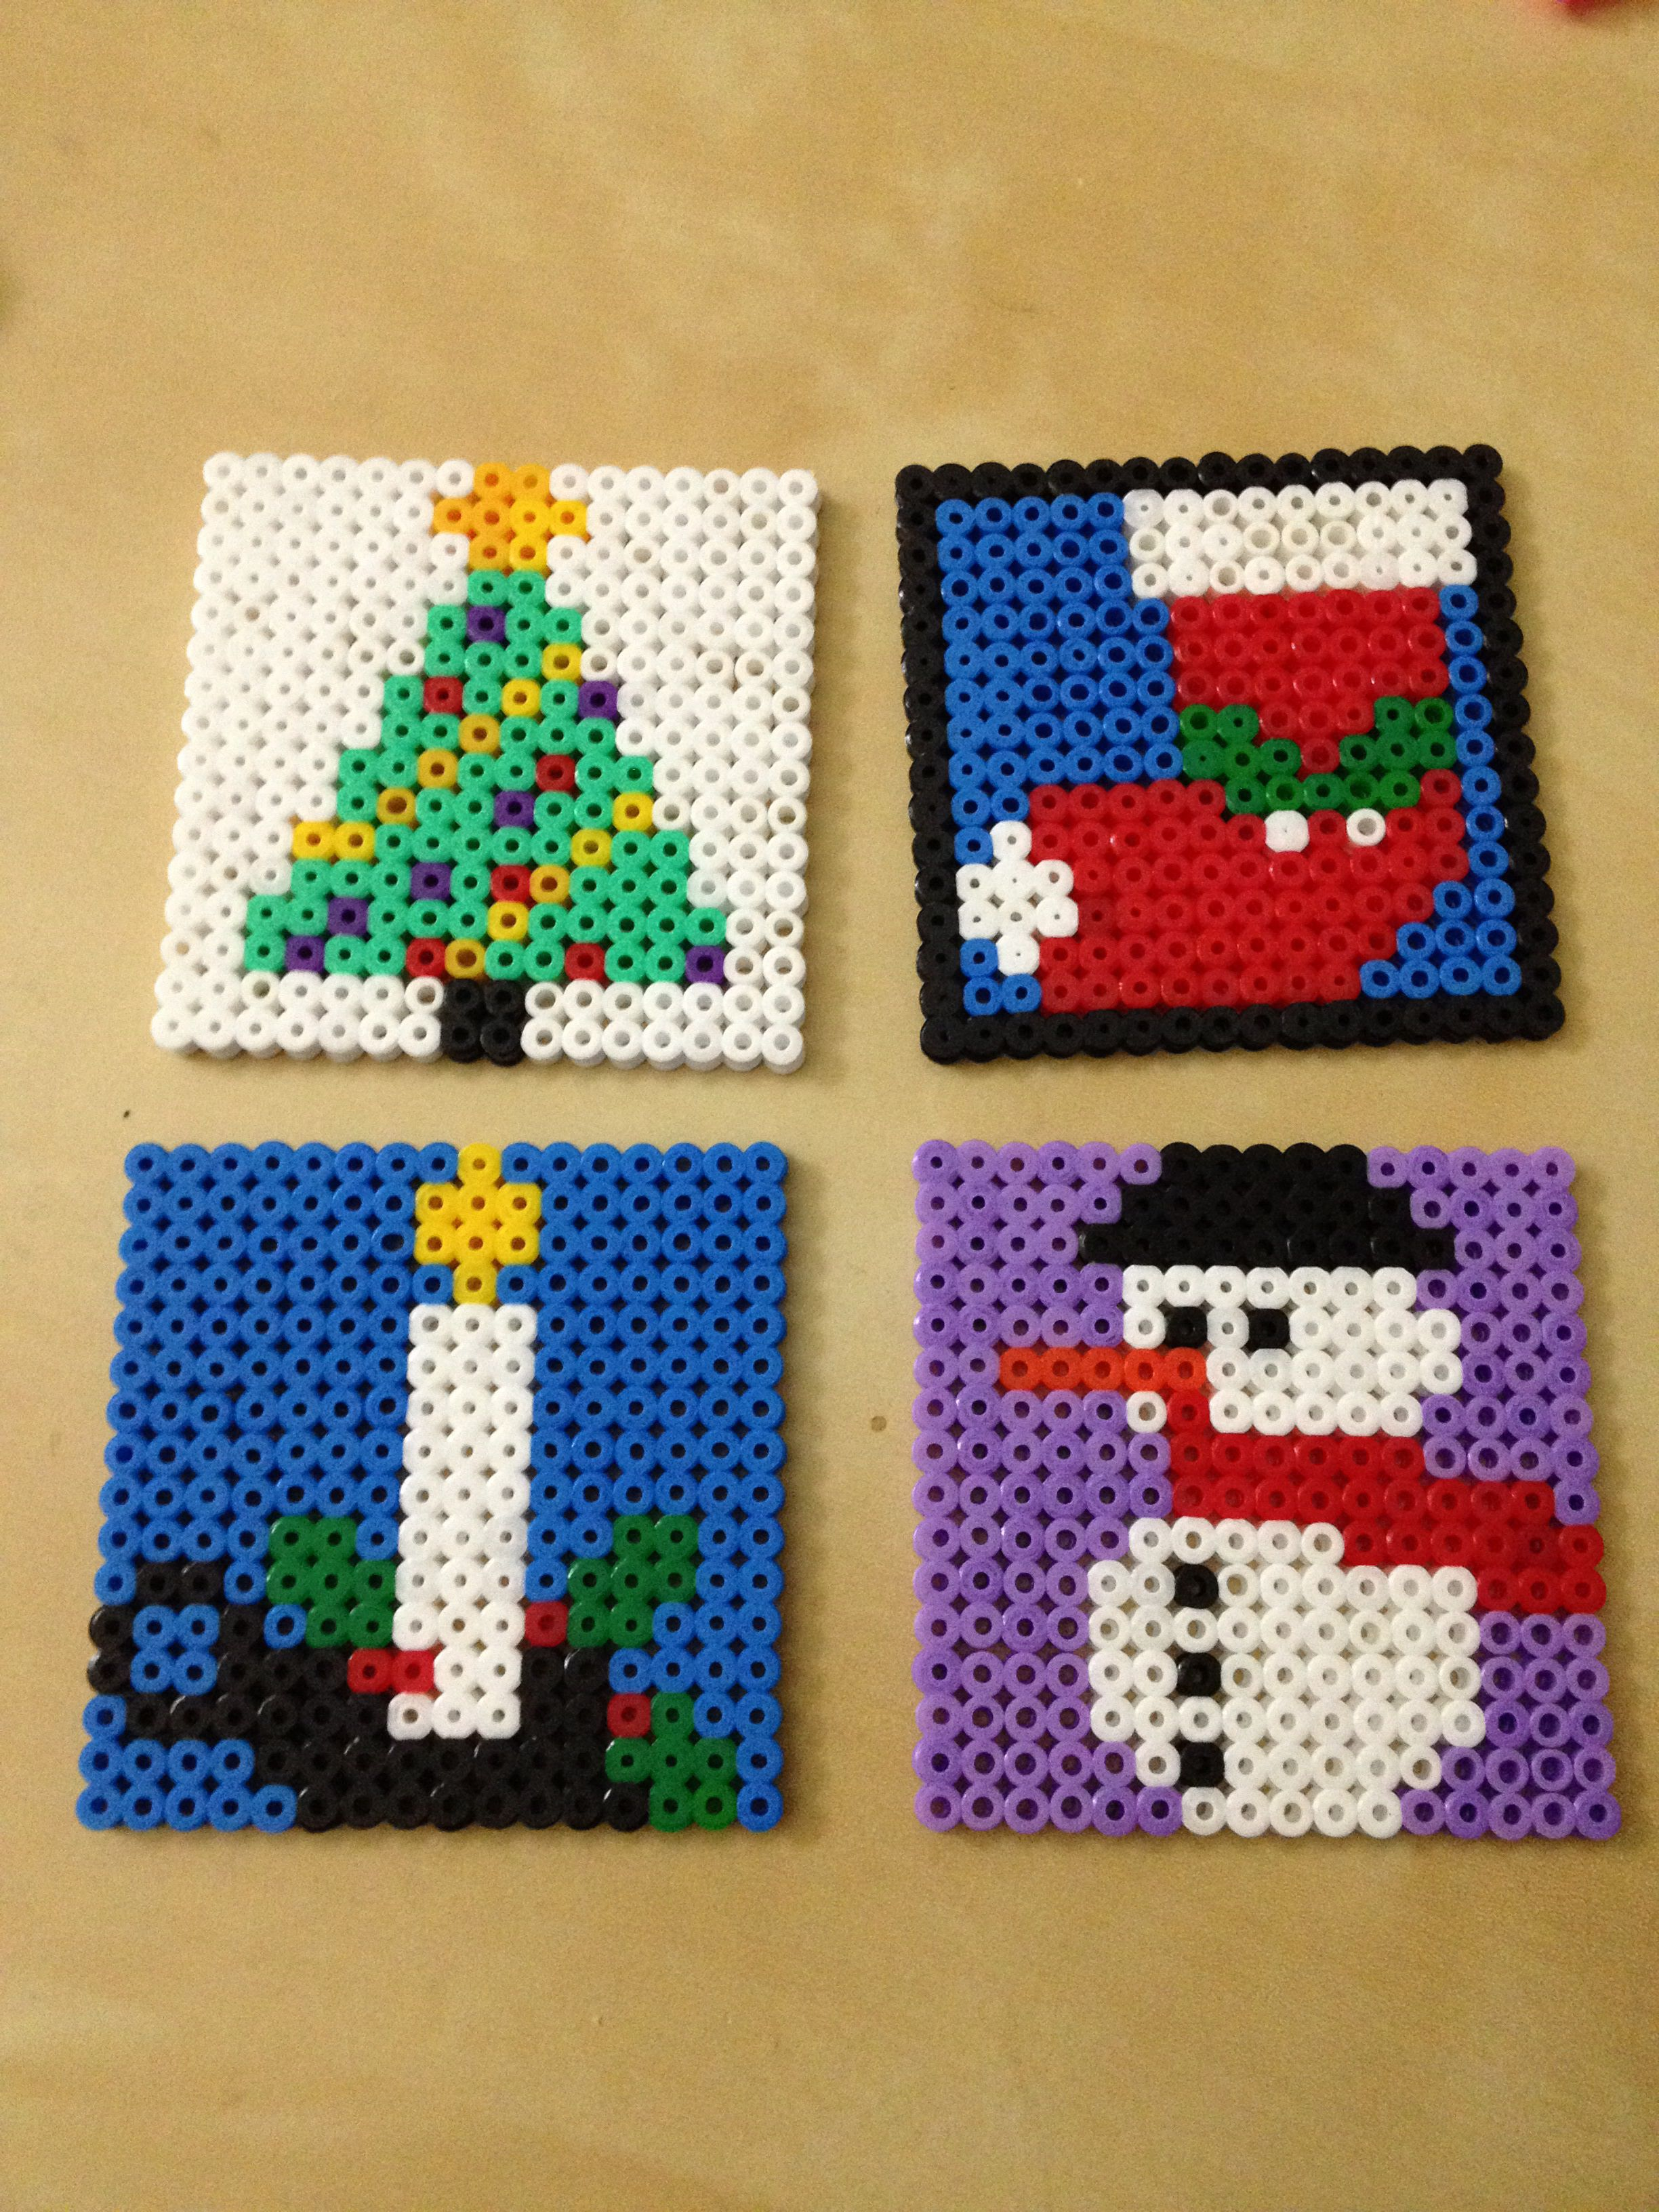 Christmas Hama Bead Designs.Christmas Coasters Hama Beads By Irema Diadema Melt Beads